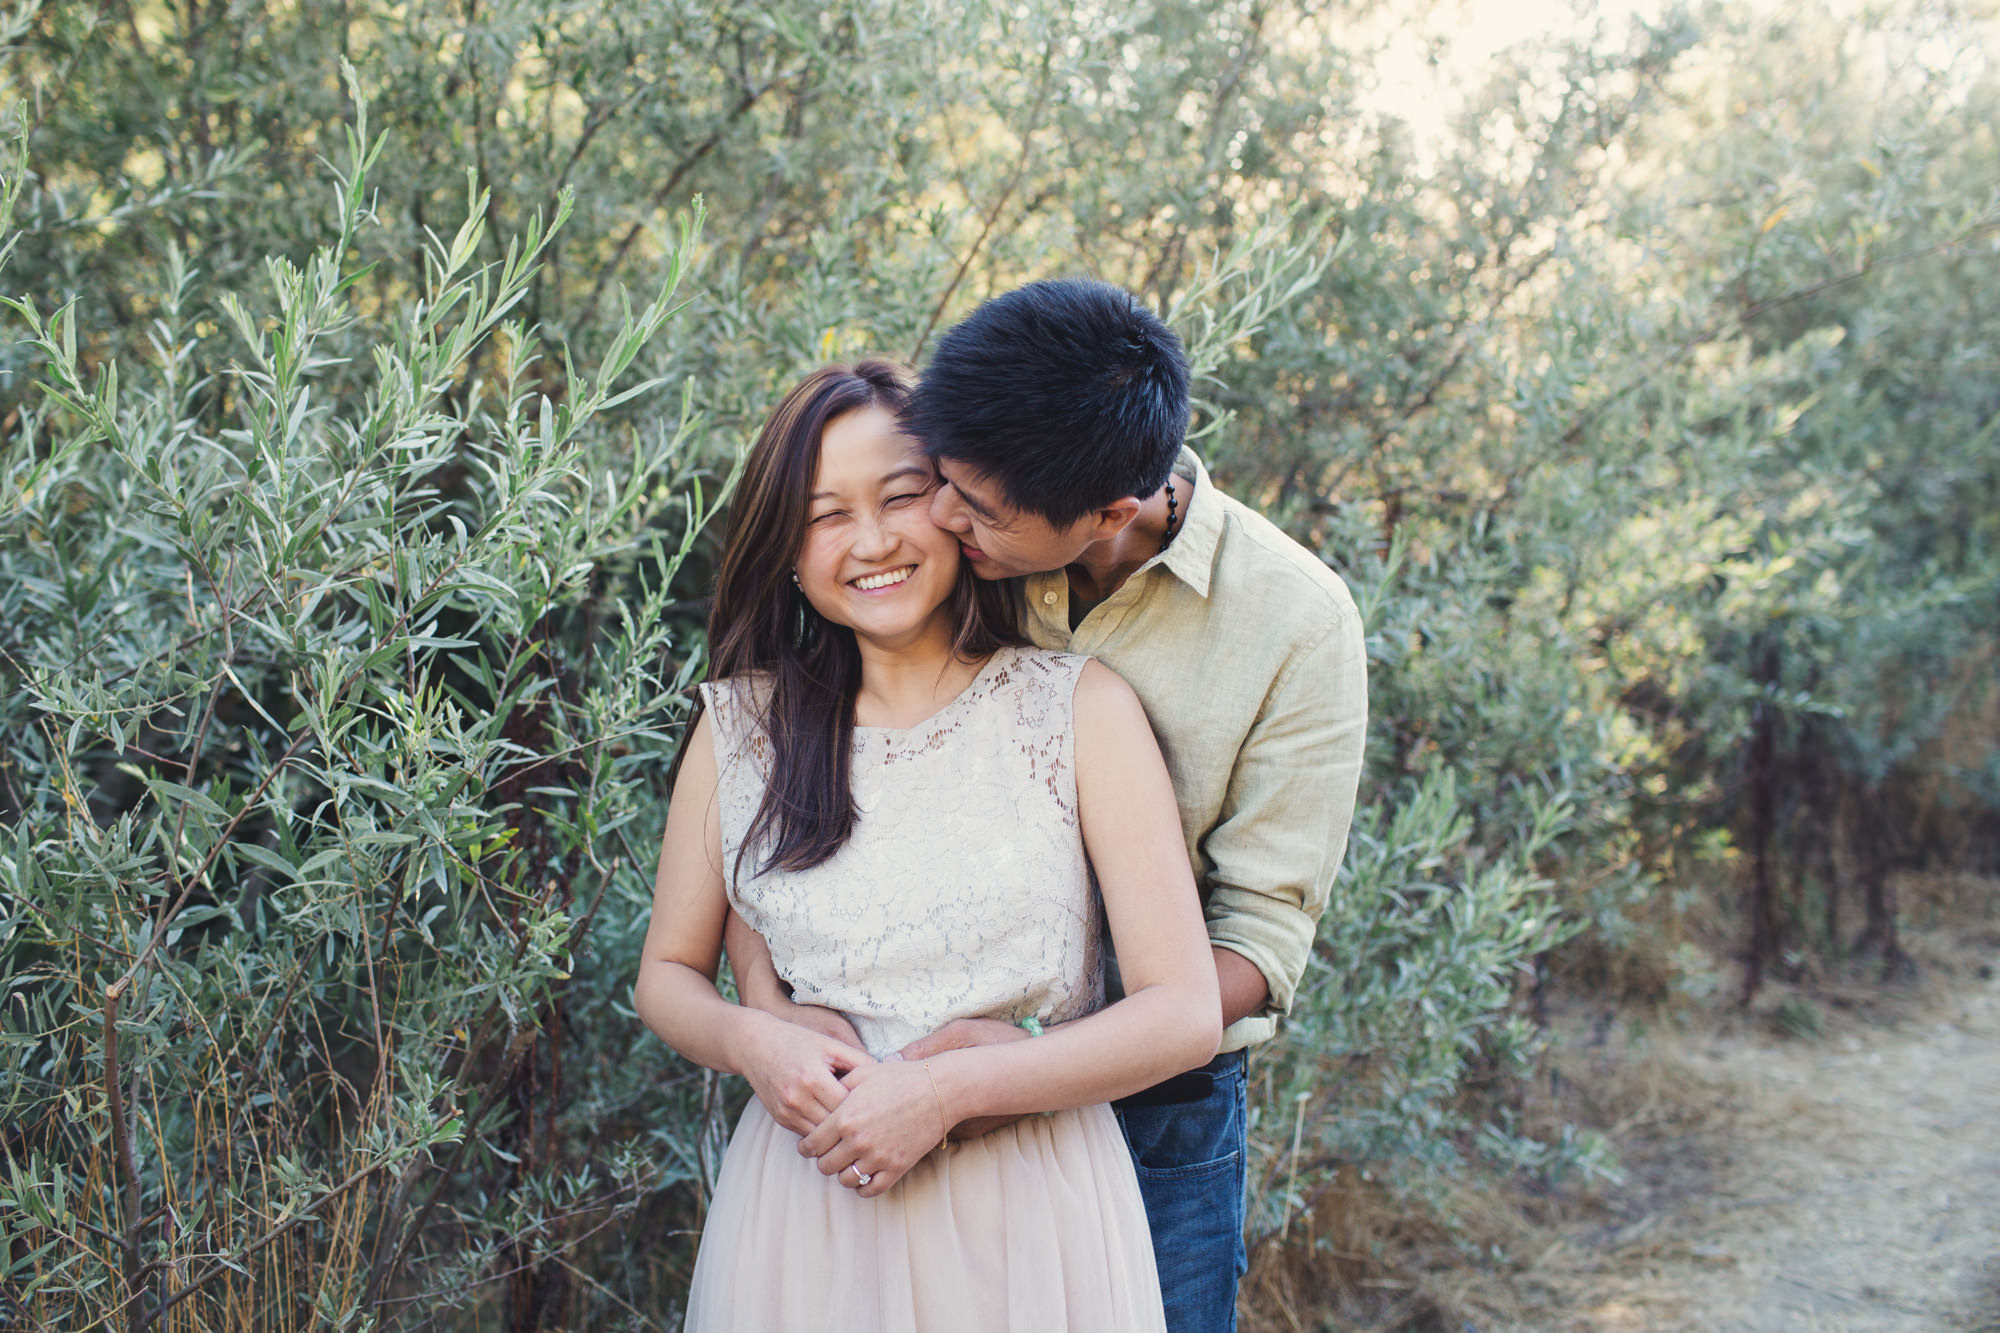 engagement session in Guerneville©Anne-Claire Brun 0007